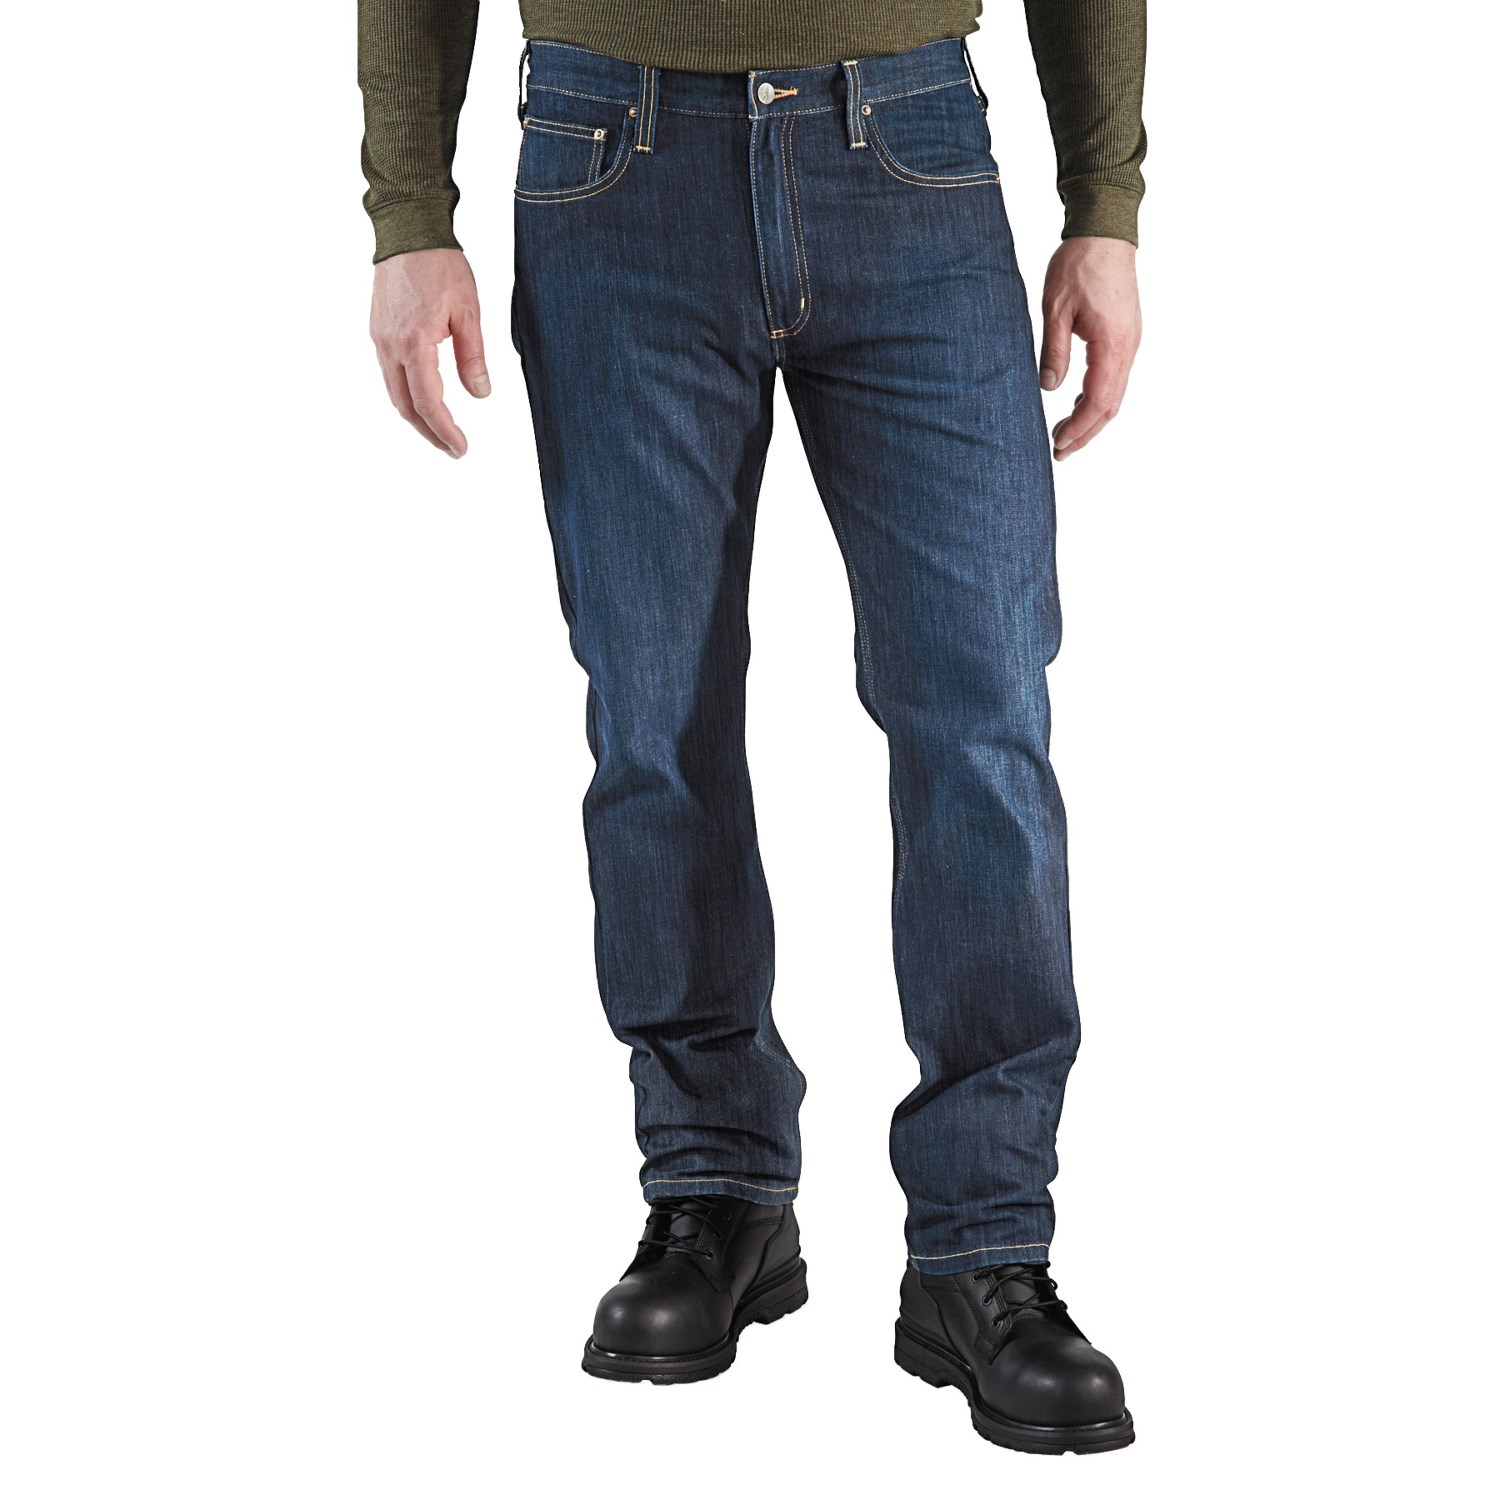 Carhartt Straight-Fit Denim Jeans (For Men) 5123V